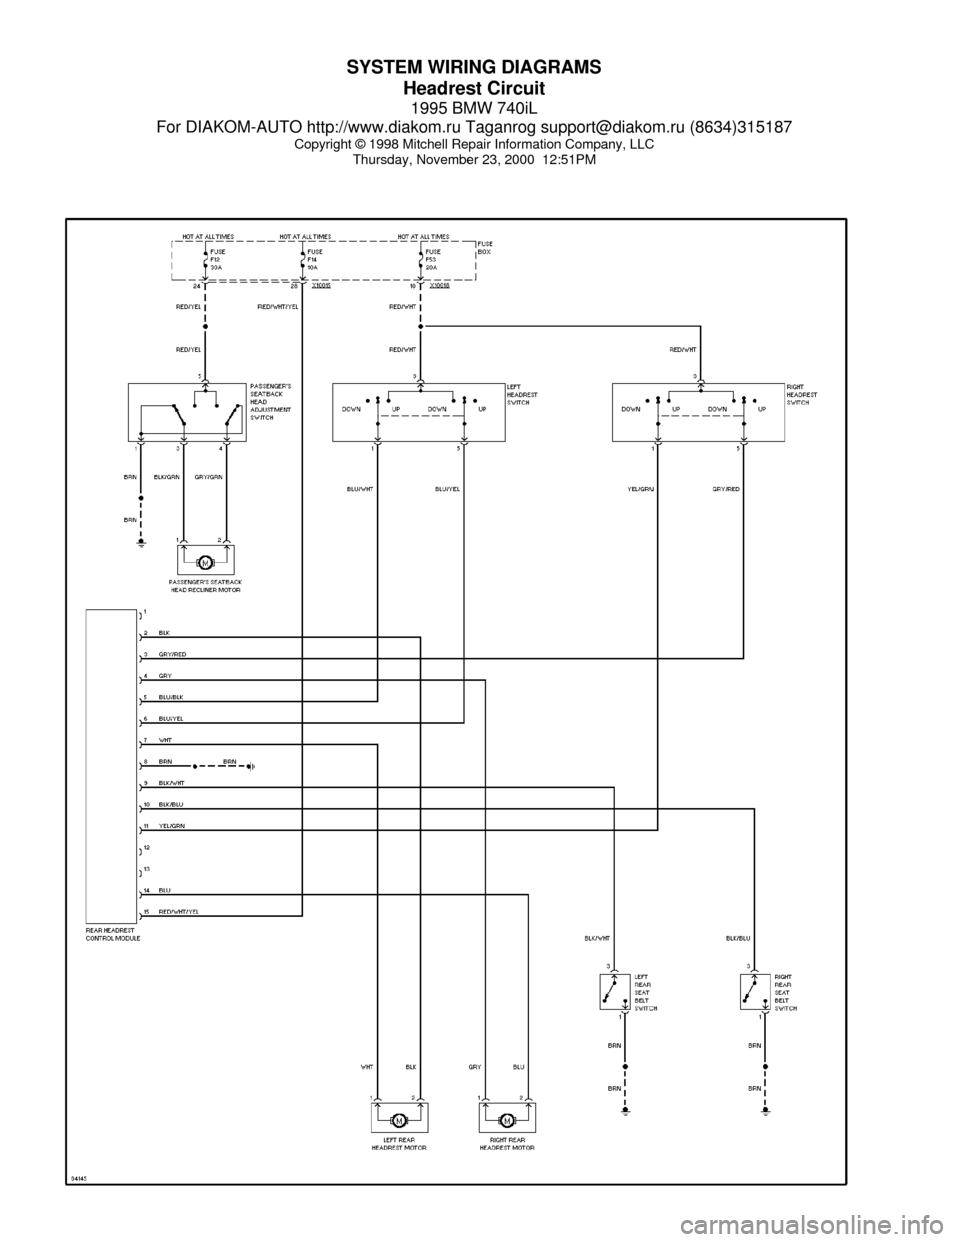 Bmw E38 Wiring Diagram Pdf : Bmw il e system wiring diagrams